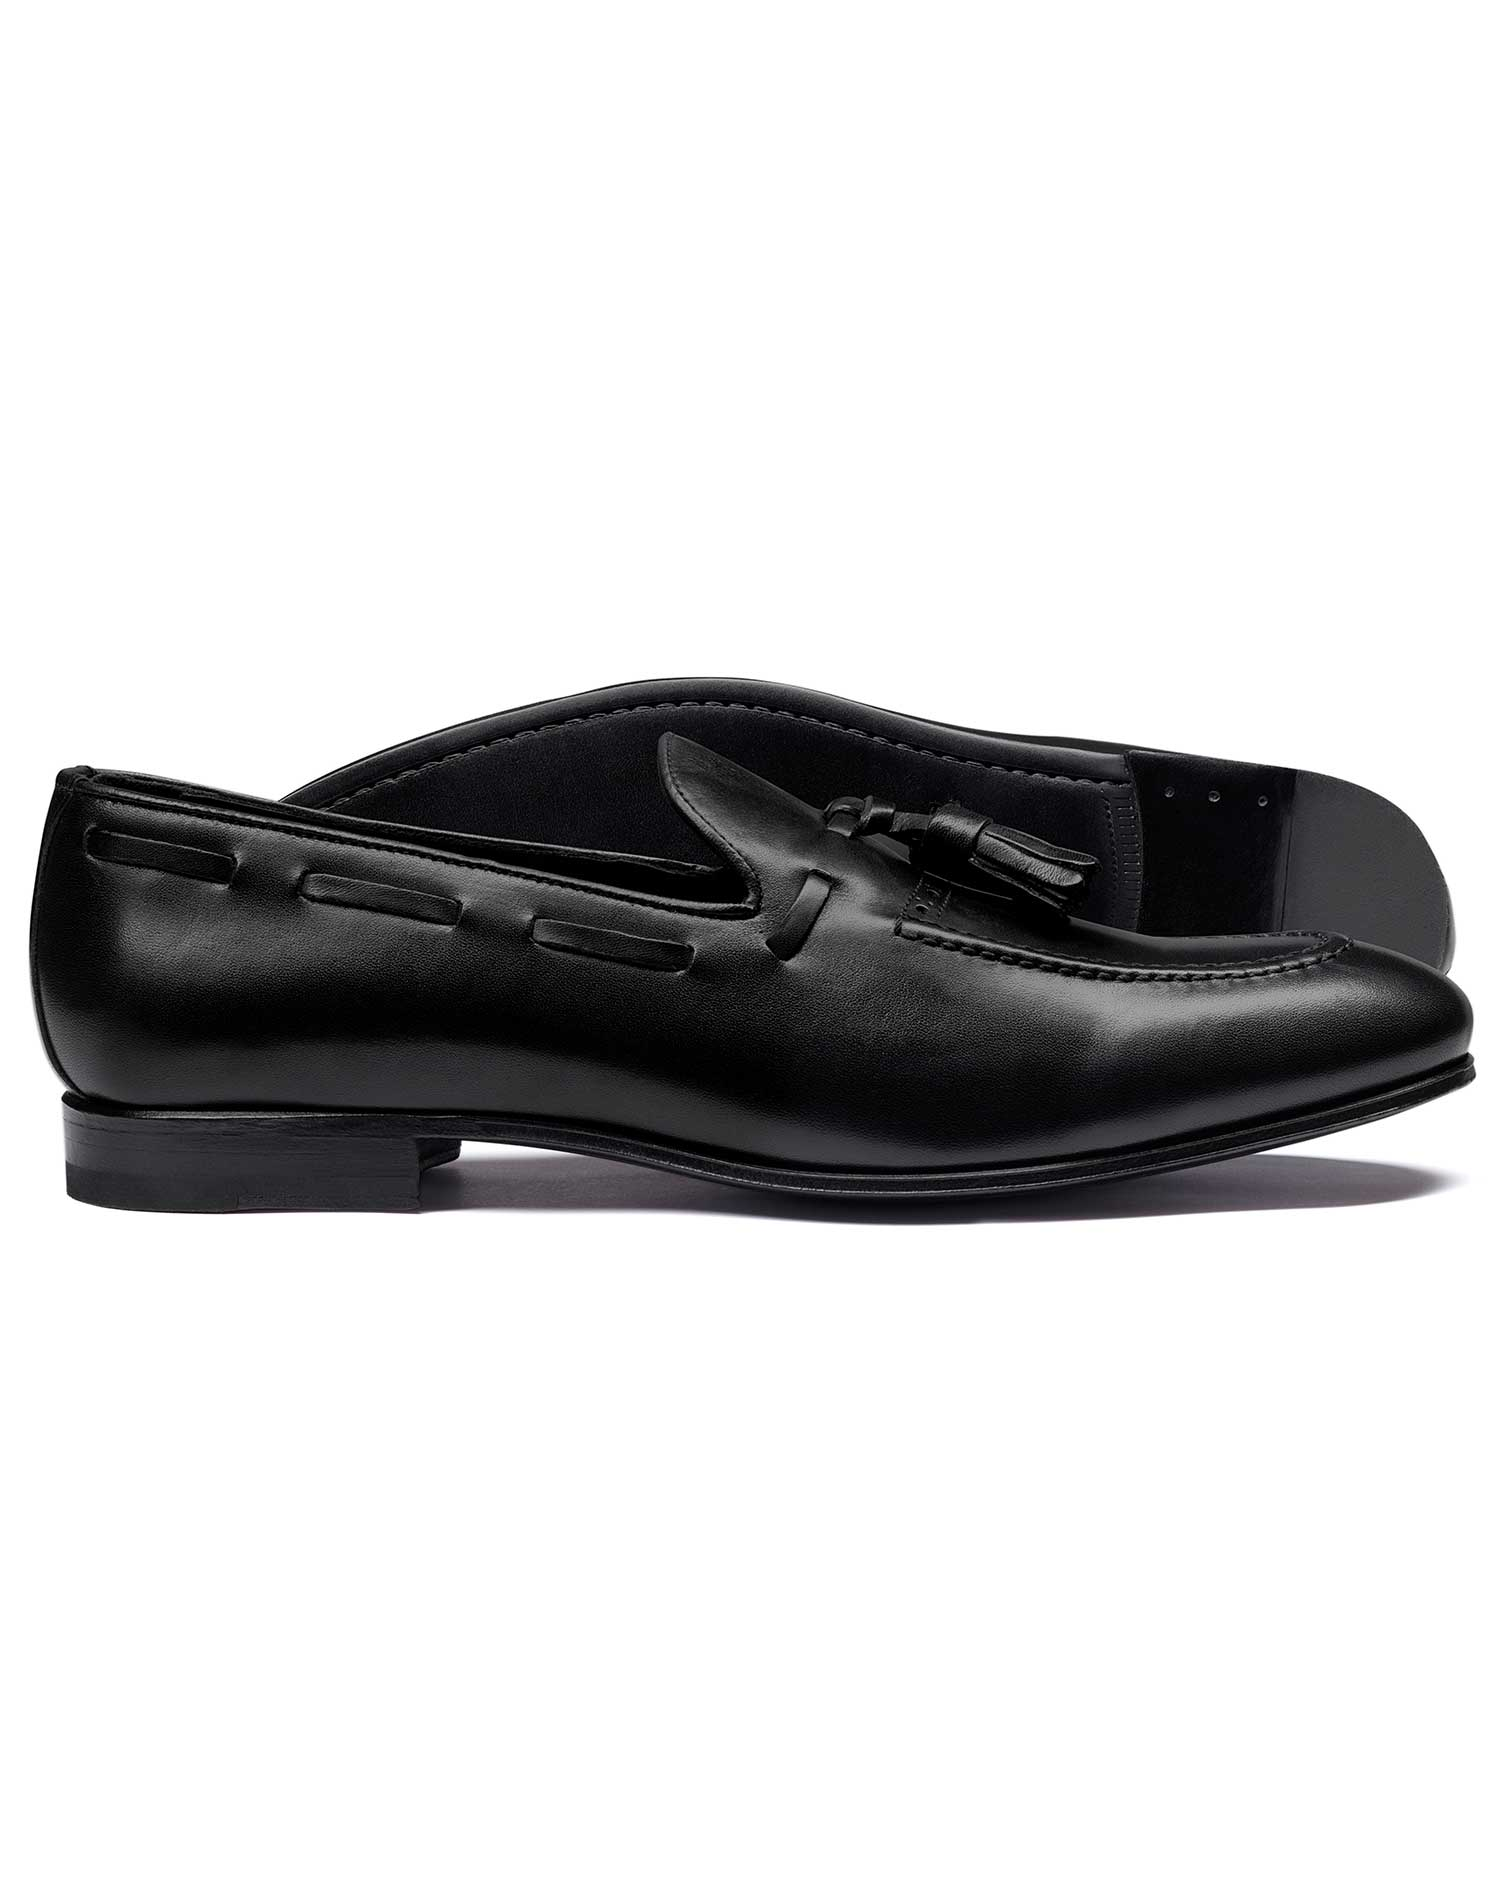 Black Tassel Loafer Size 6 R by Charles Tyrwhitt